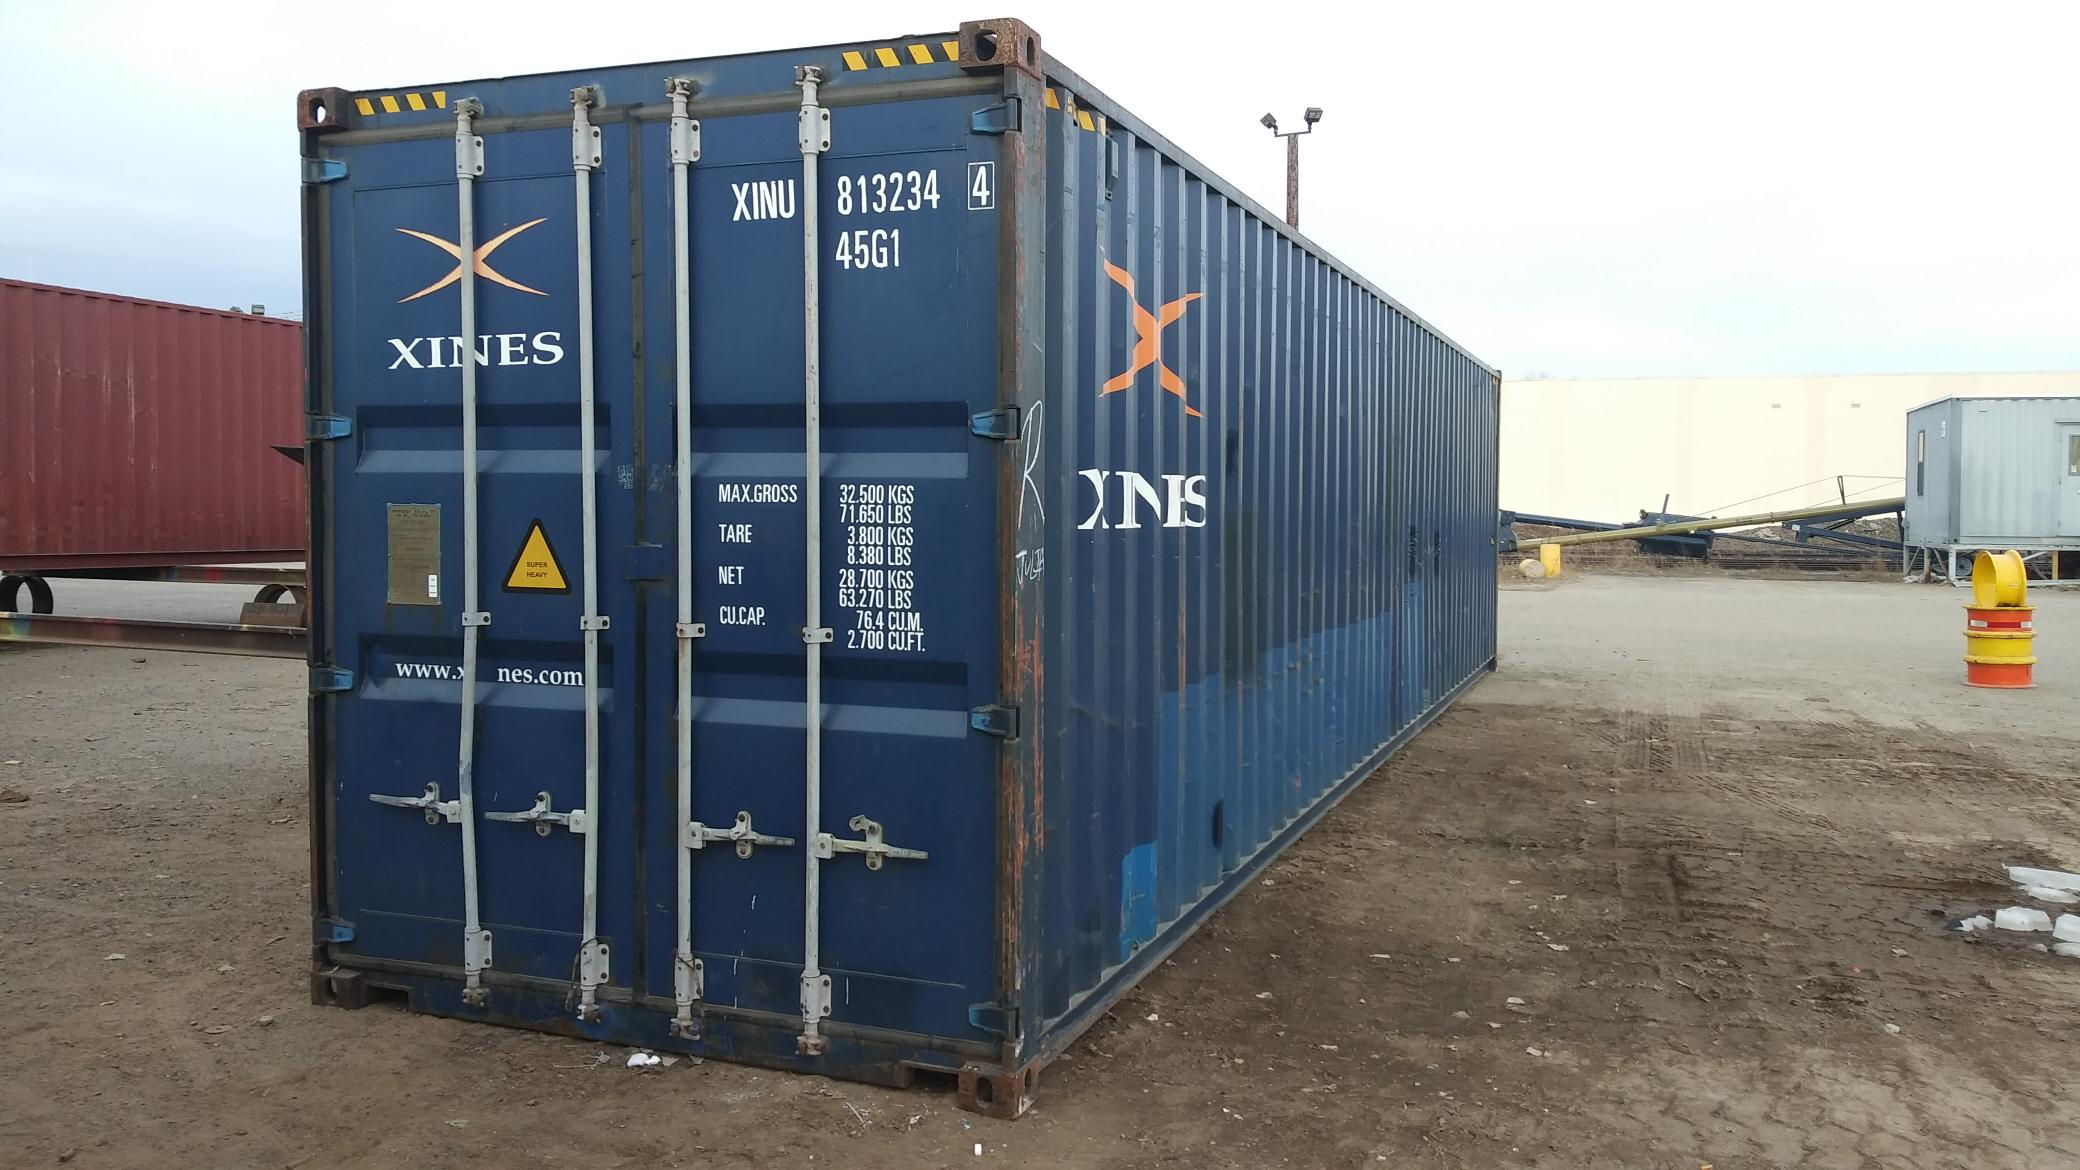 This workhorse of a 40' high cube is ready to be yours